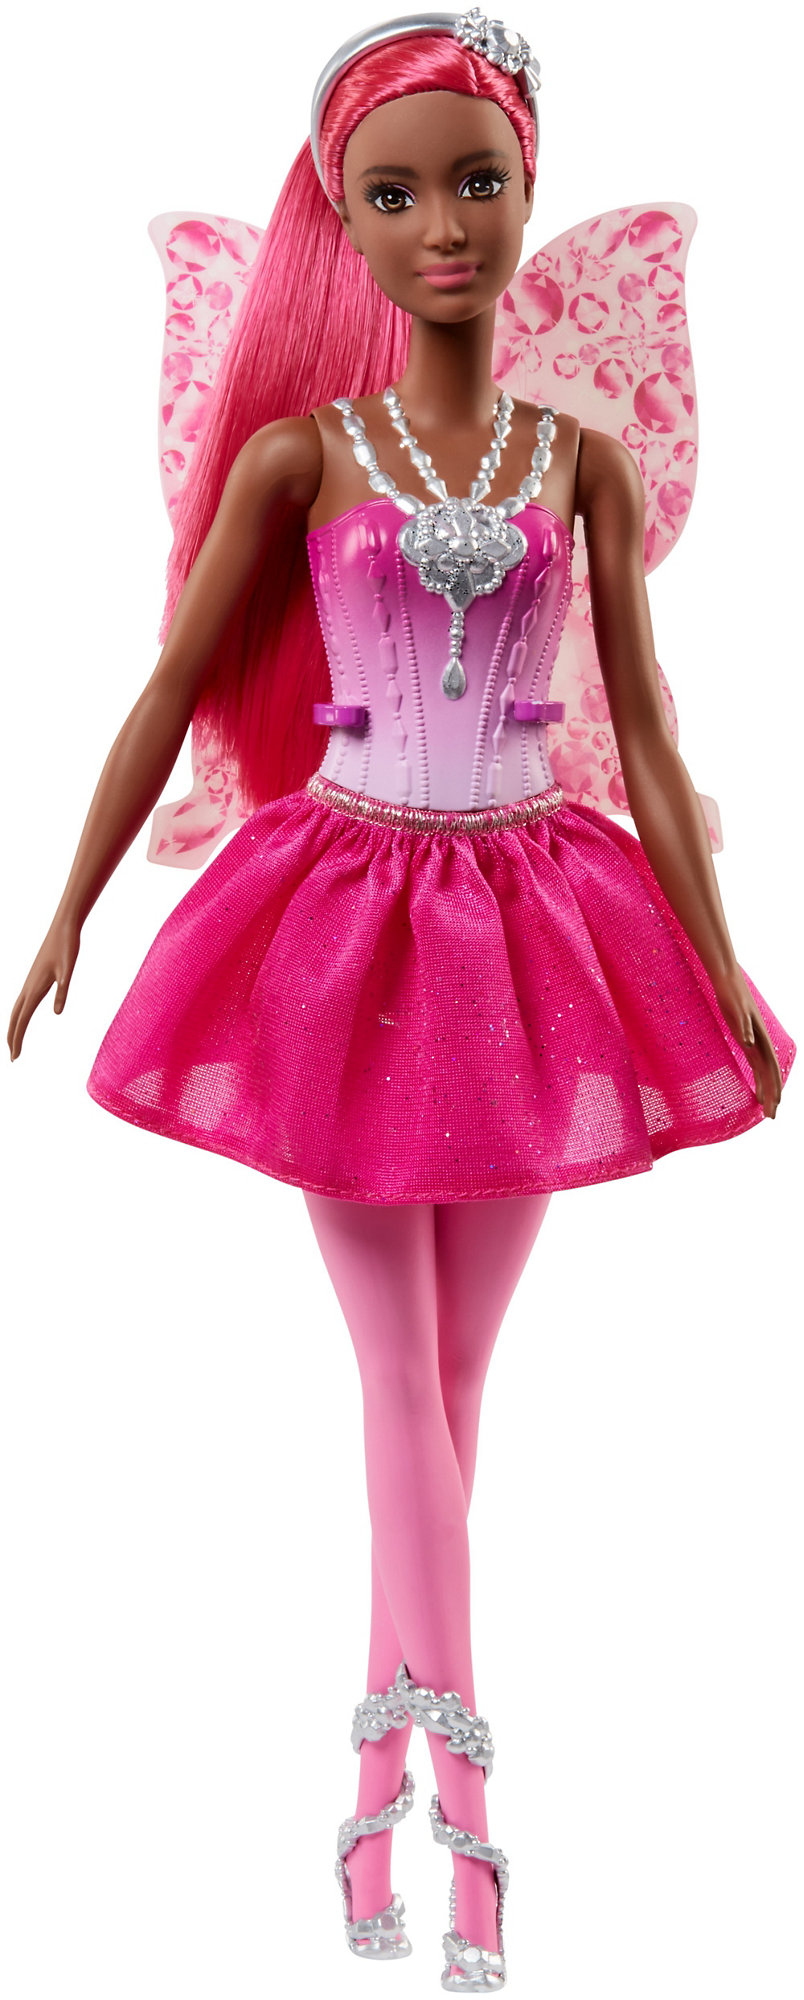 Barbie Dreamtopia Fairy Doll, Pink Ponytail with Jewel Print Wings by Mattel